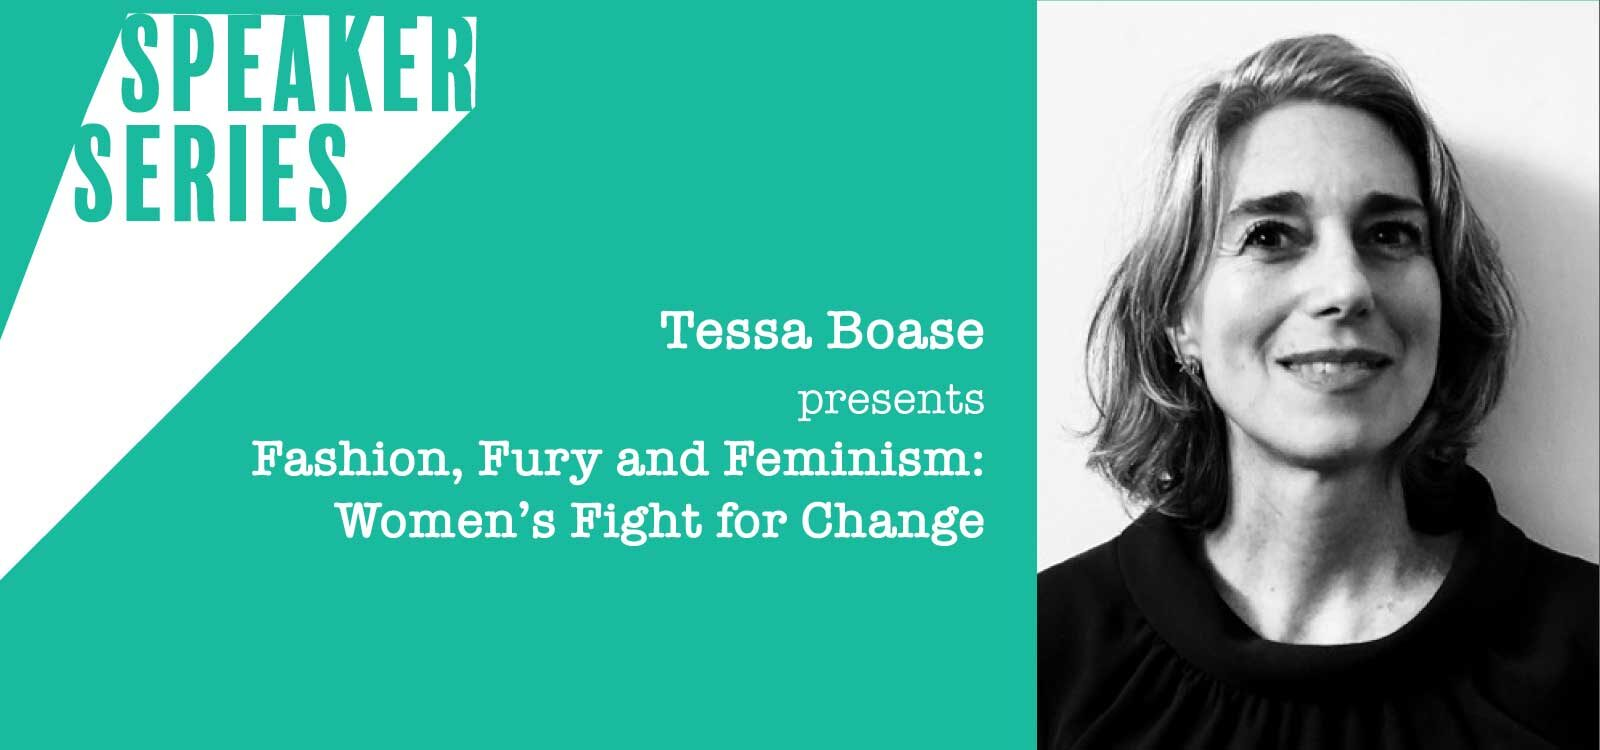 Speaker Series with Tessa Boase for Women's History Month